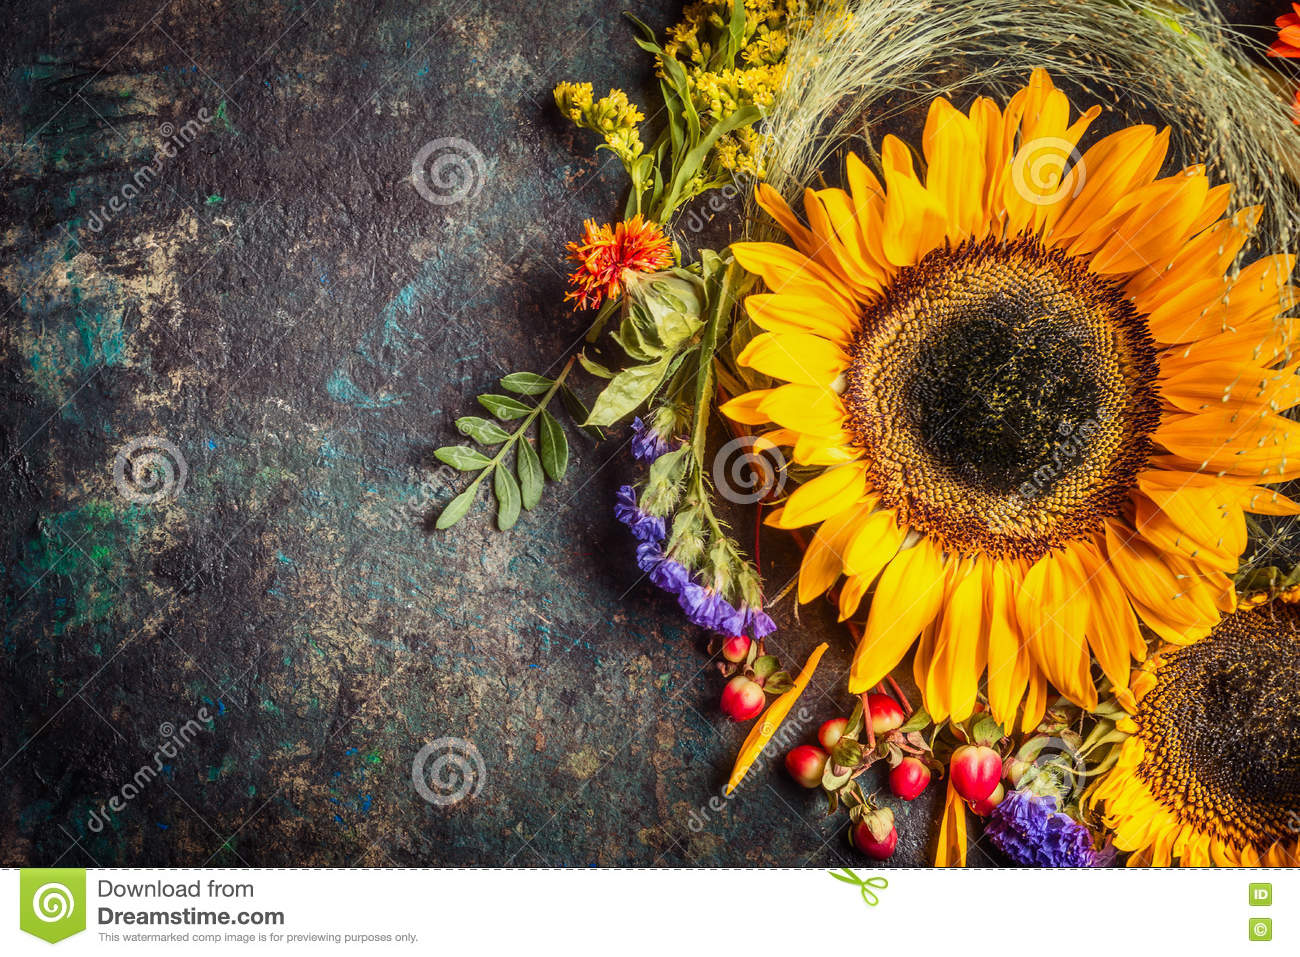 Sunflowers With Berries And Flowers Floral Autumn Decoration On